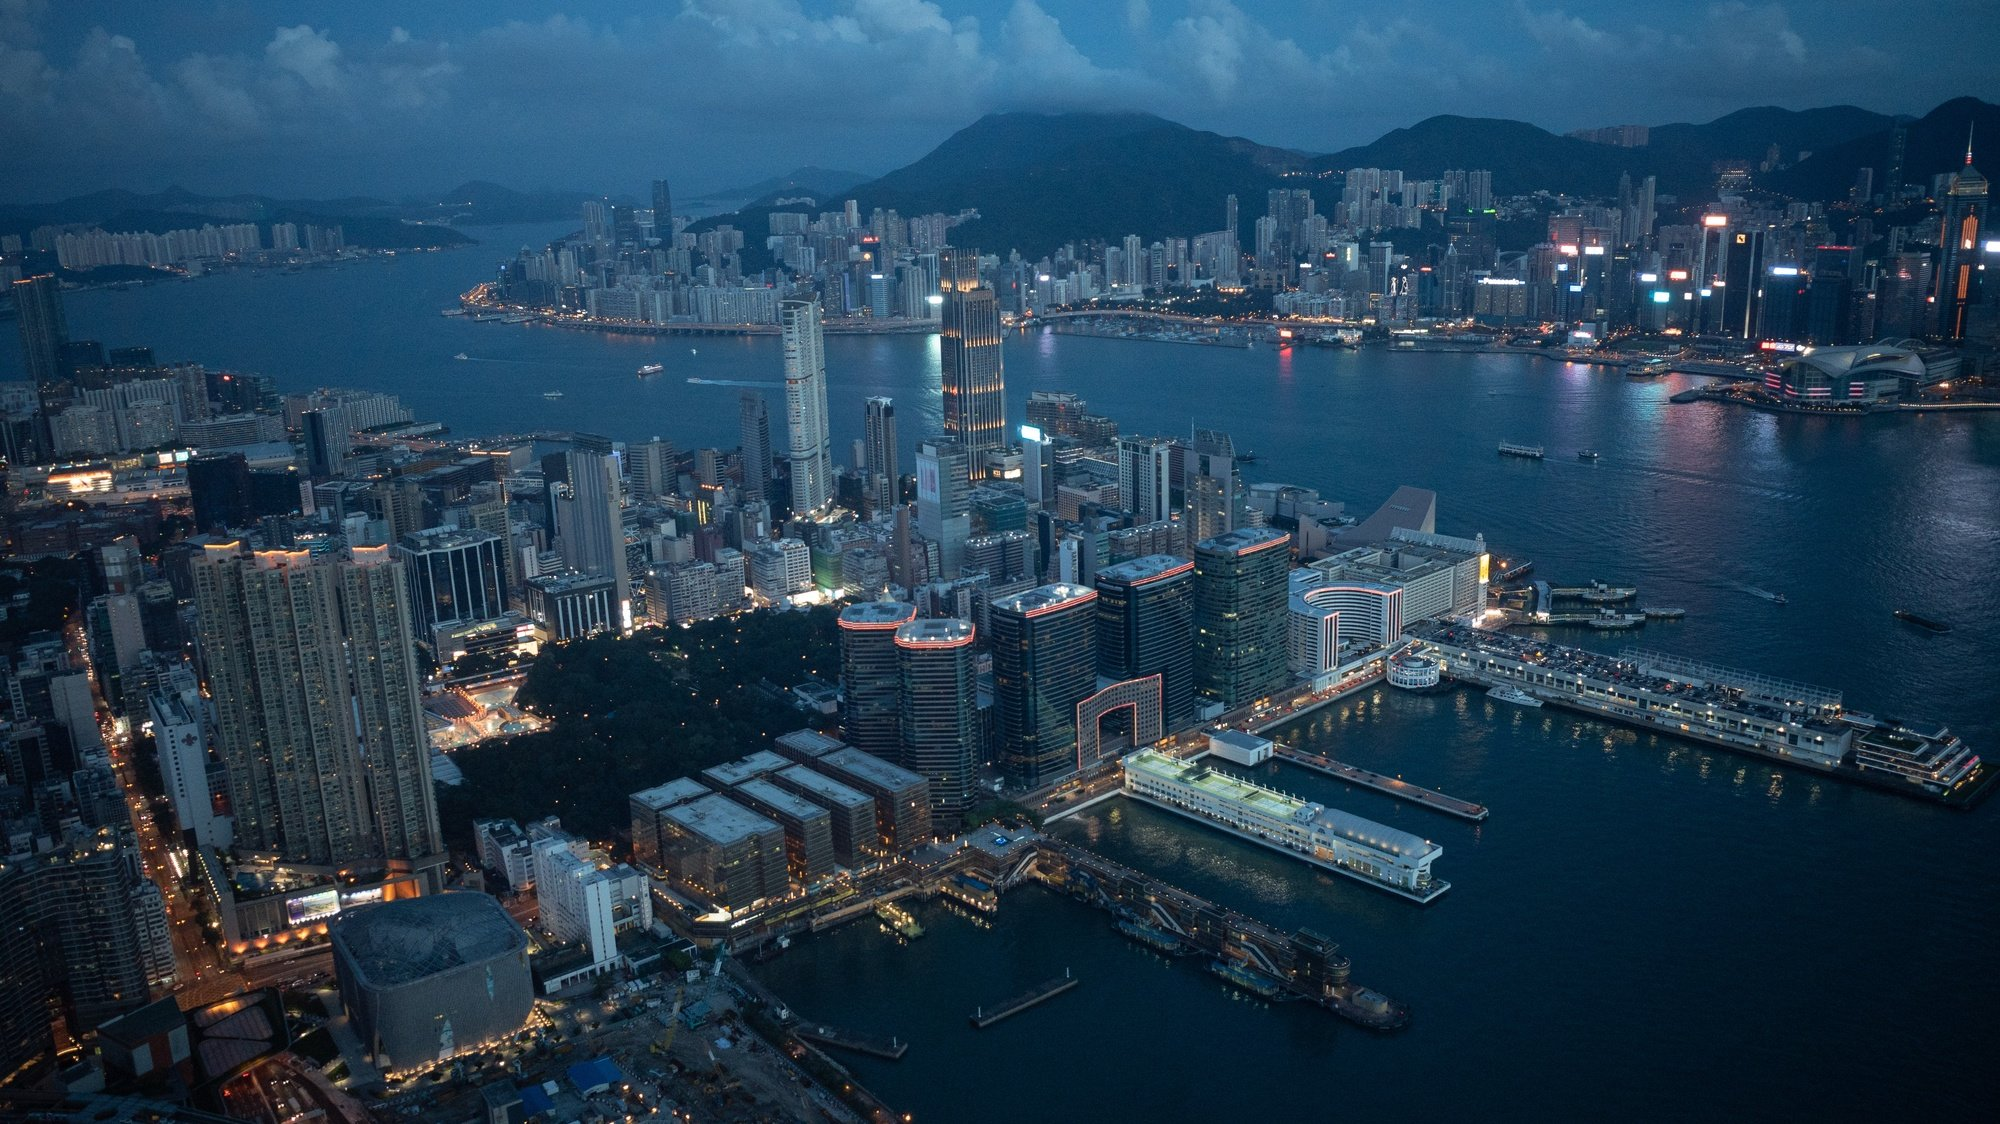 epa08683509 Residential and commercial buildings stand on the Kowloon Peninsula (front), and on Hong Kong Island as seen from Sky 100 in Hong Kong, China, 20 September 2020. Sky 100 is located at 393 metres above sea level in the International Financial Centre and offers a 360-degrees panoramic view of the city.  EPA/JEROME FAVRE